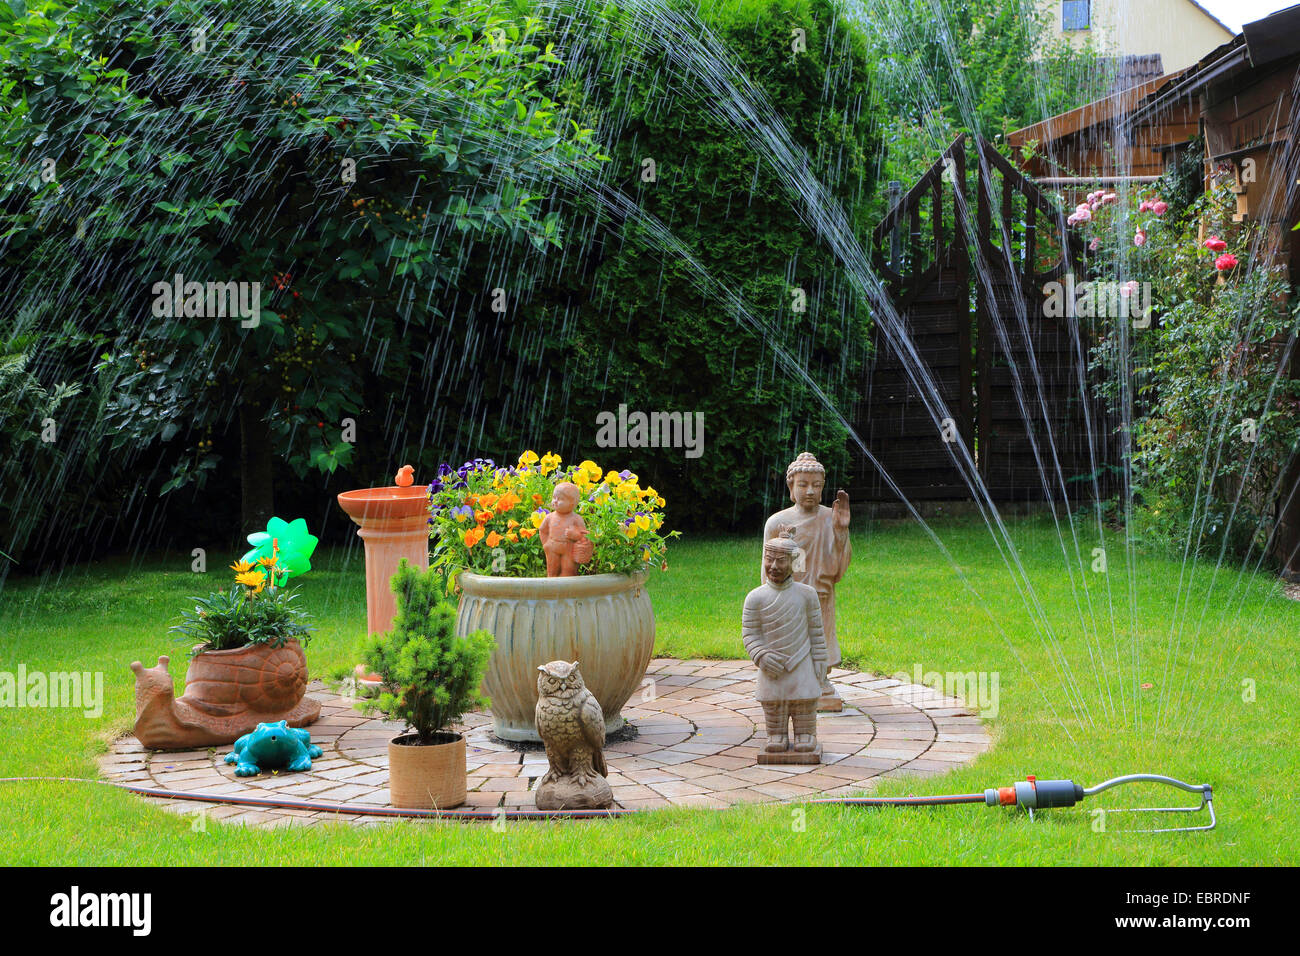 sprinkling lawn and garden decoration, Germany - Stock Image